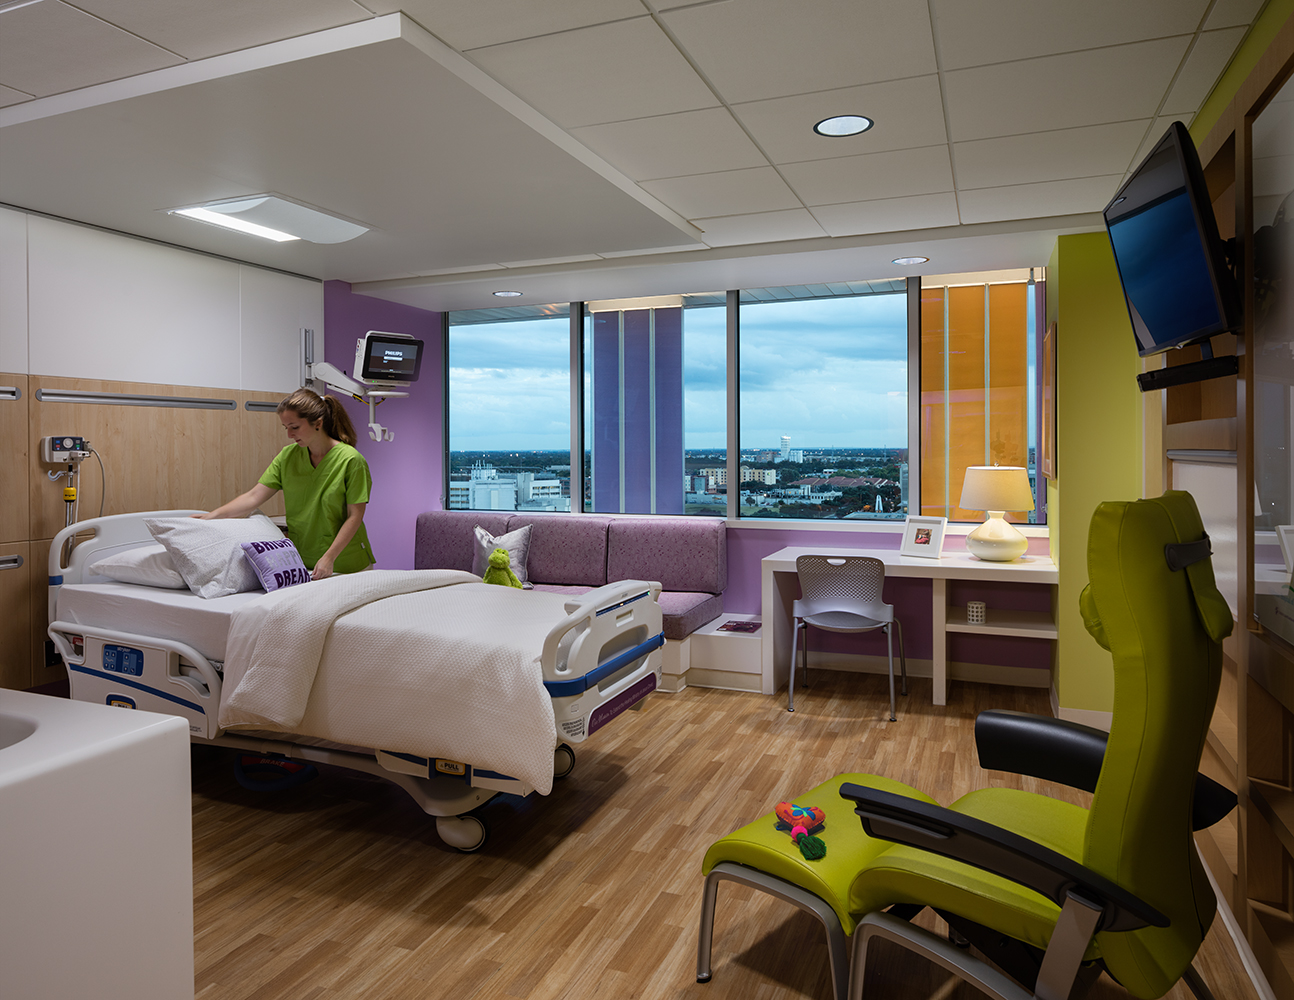 Unity overbed luminaire provides patient room lighting while a nurse adjusts the bedding.